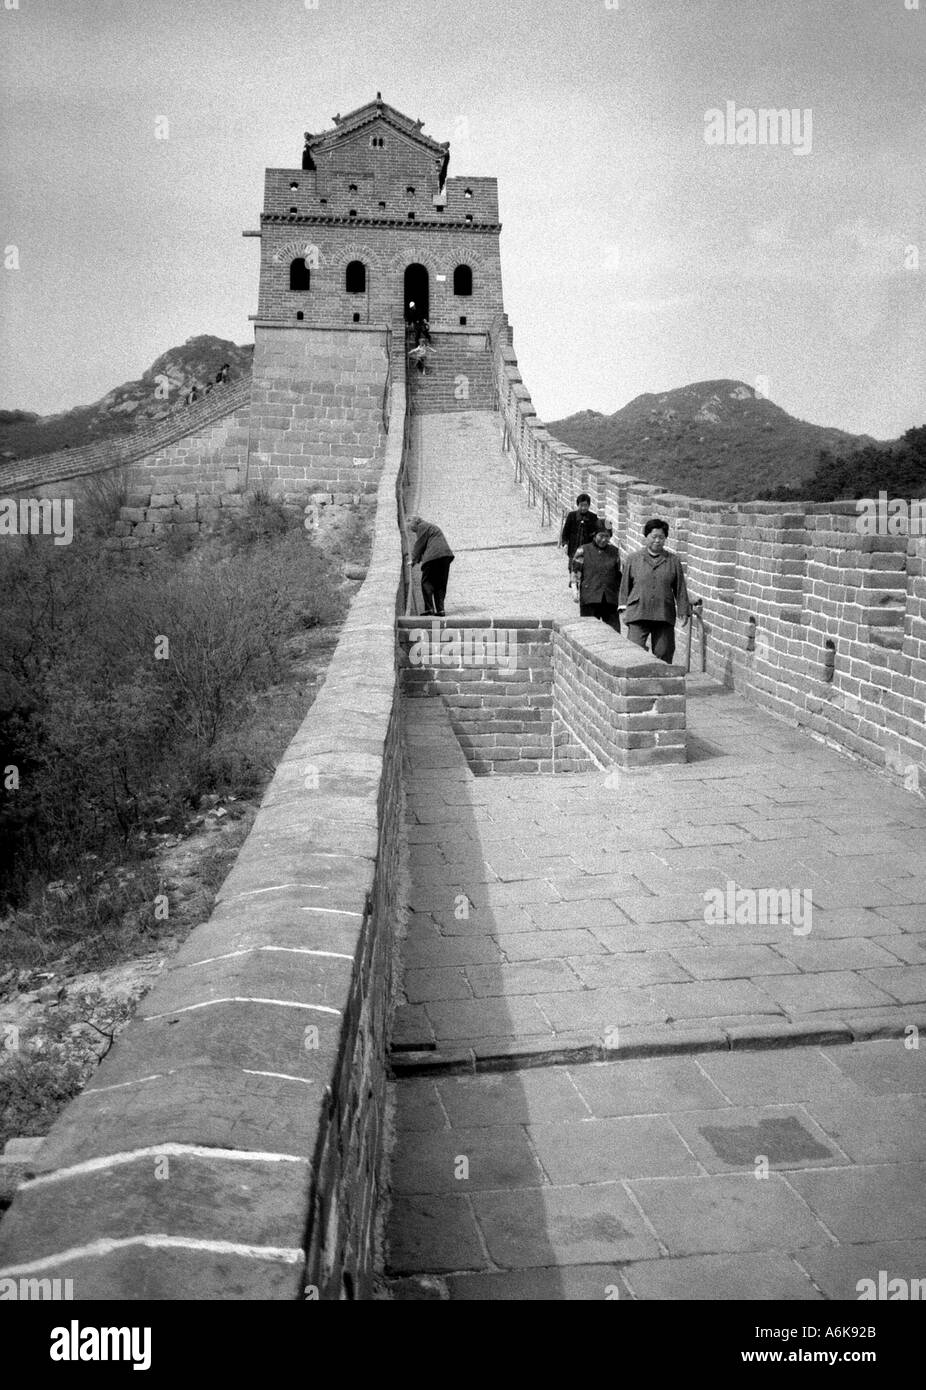 Great Wall North Pass Juyongguan Badaling UNESCO World Heritage Site Beijing Peking China Chinese Asian Asiatic Asia - Stock Image